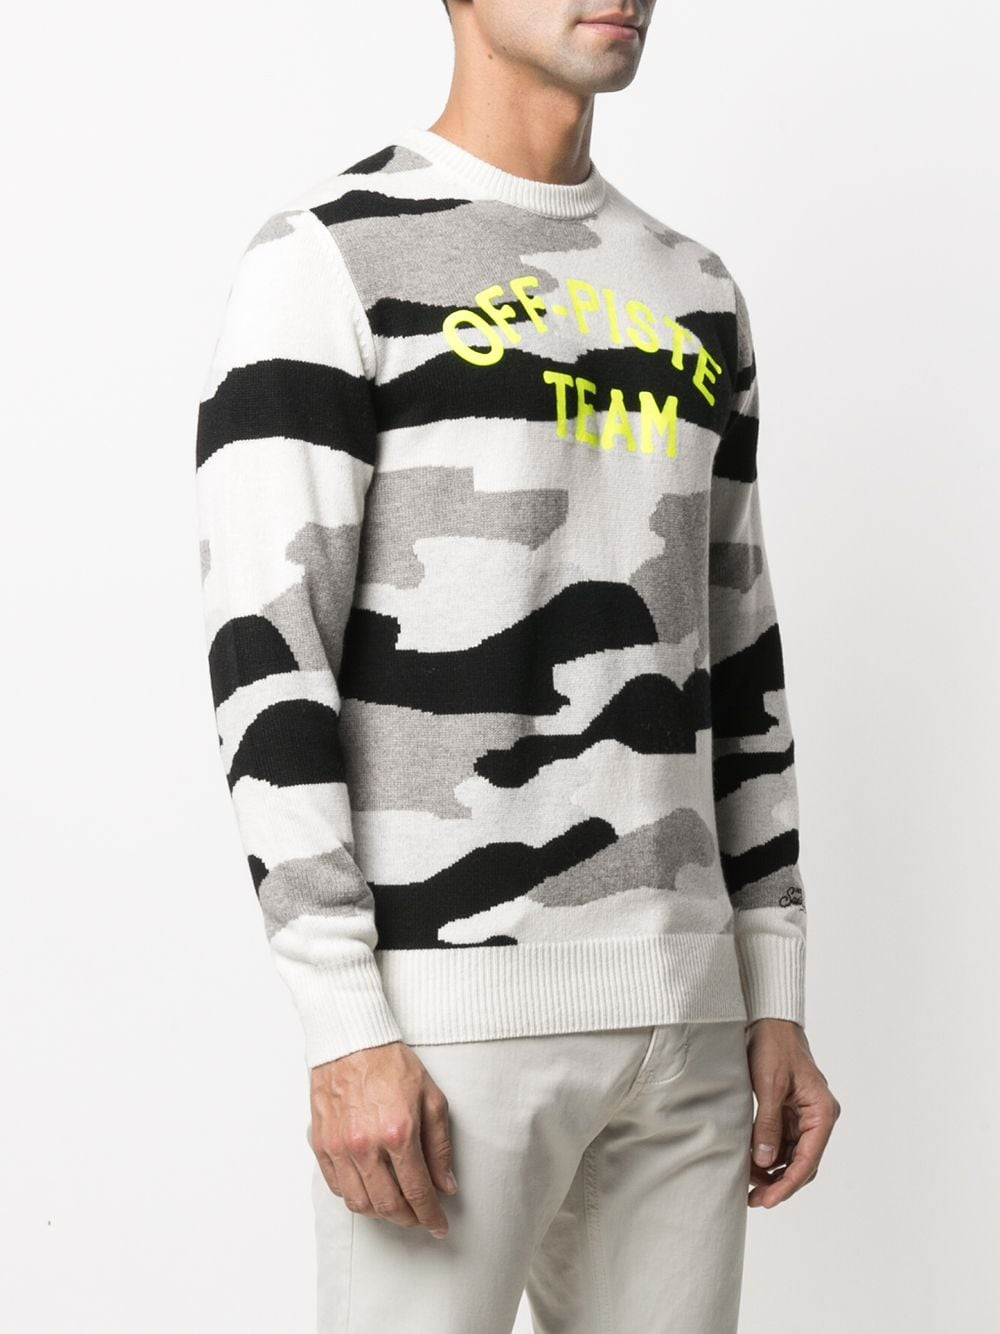 Black and medium grey cashmere and wool intarsia-knit camouflage-pattern jumper featuring Off Piste Team yellow logo print MC2 |  | HERON-SNOW CAMO OPT1094